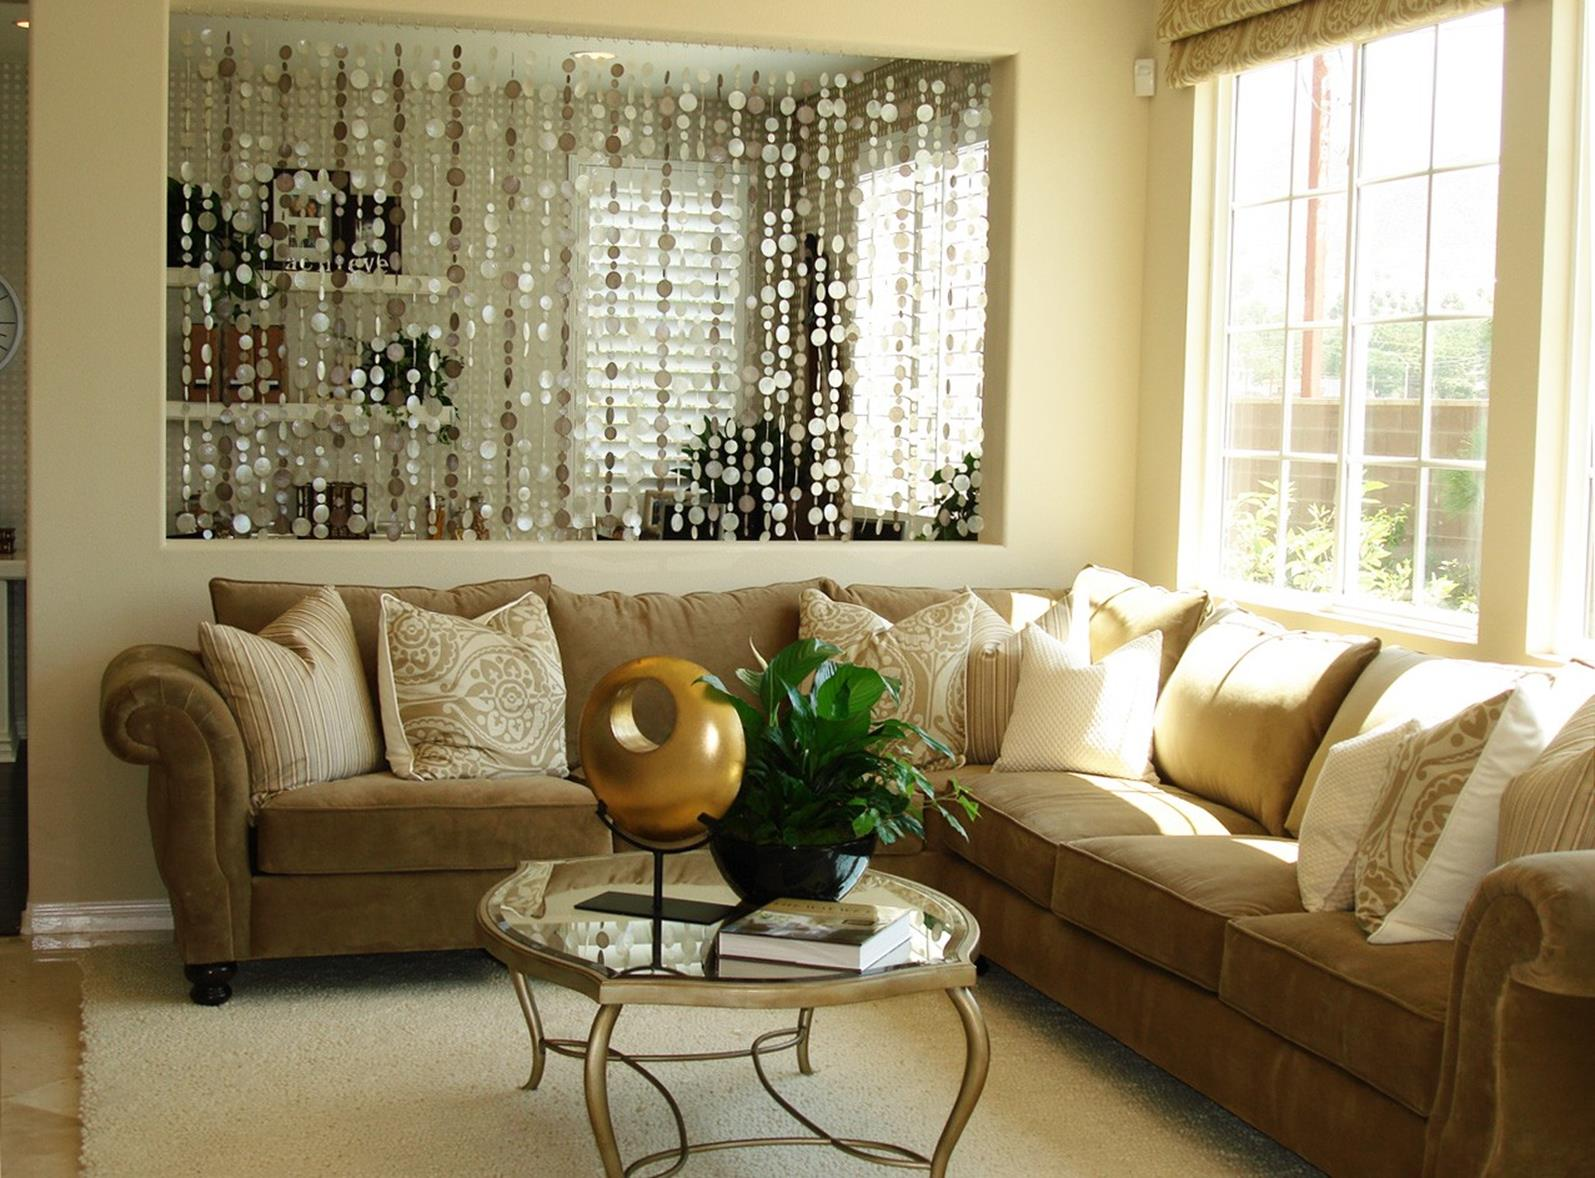 Best Neutral Paint Colors For Living Room 34